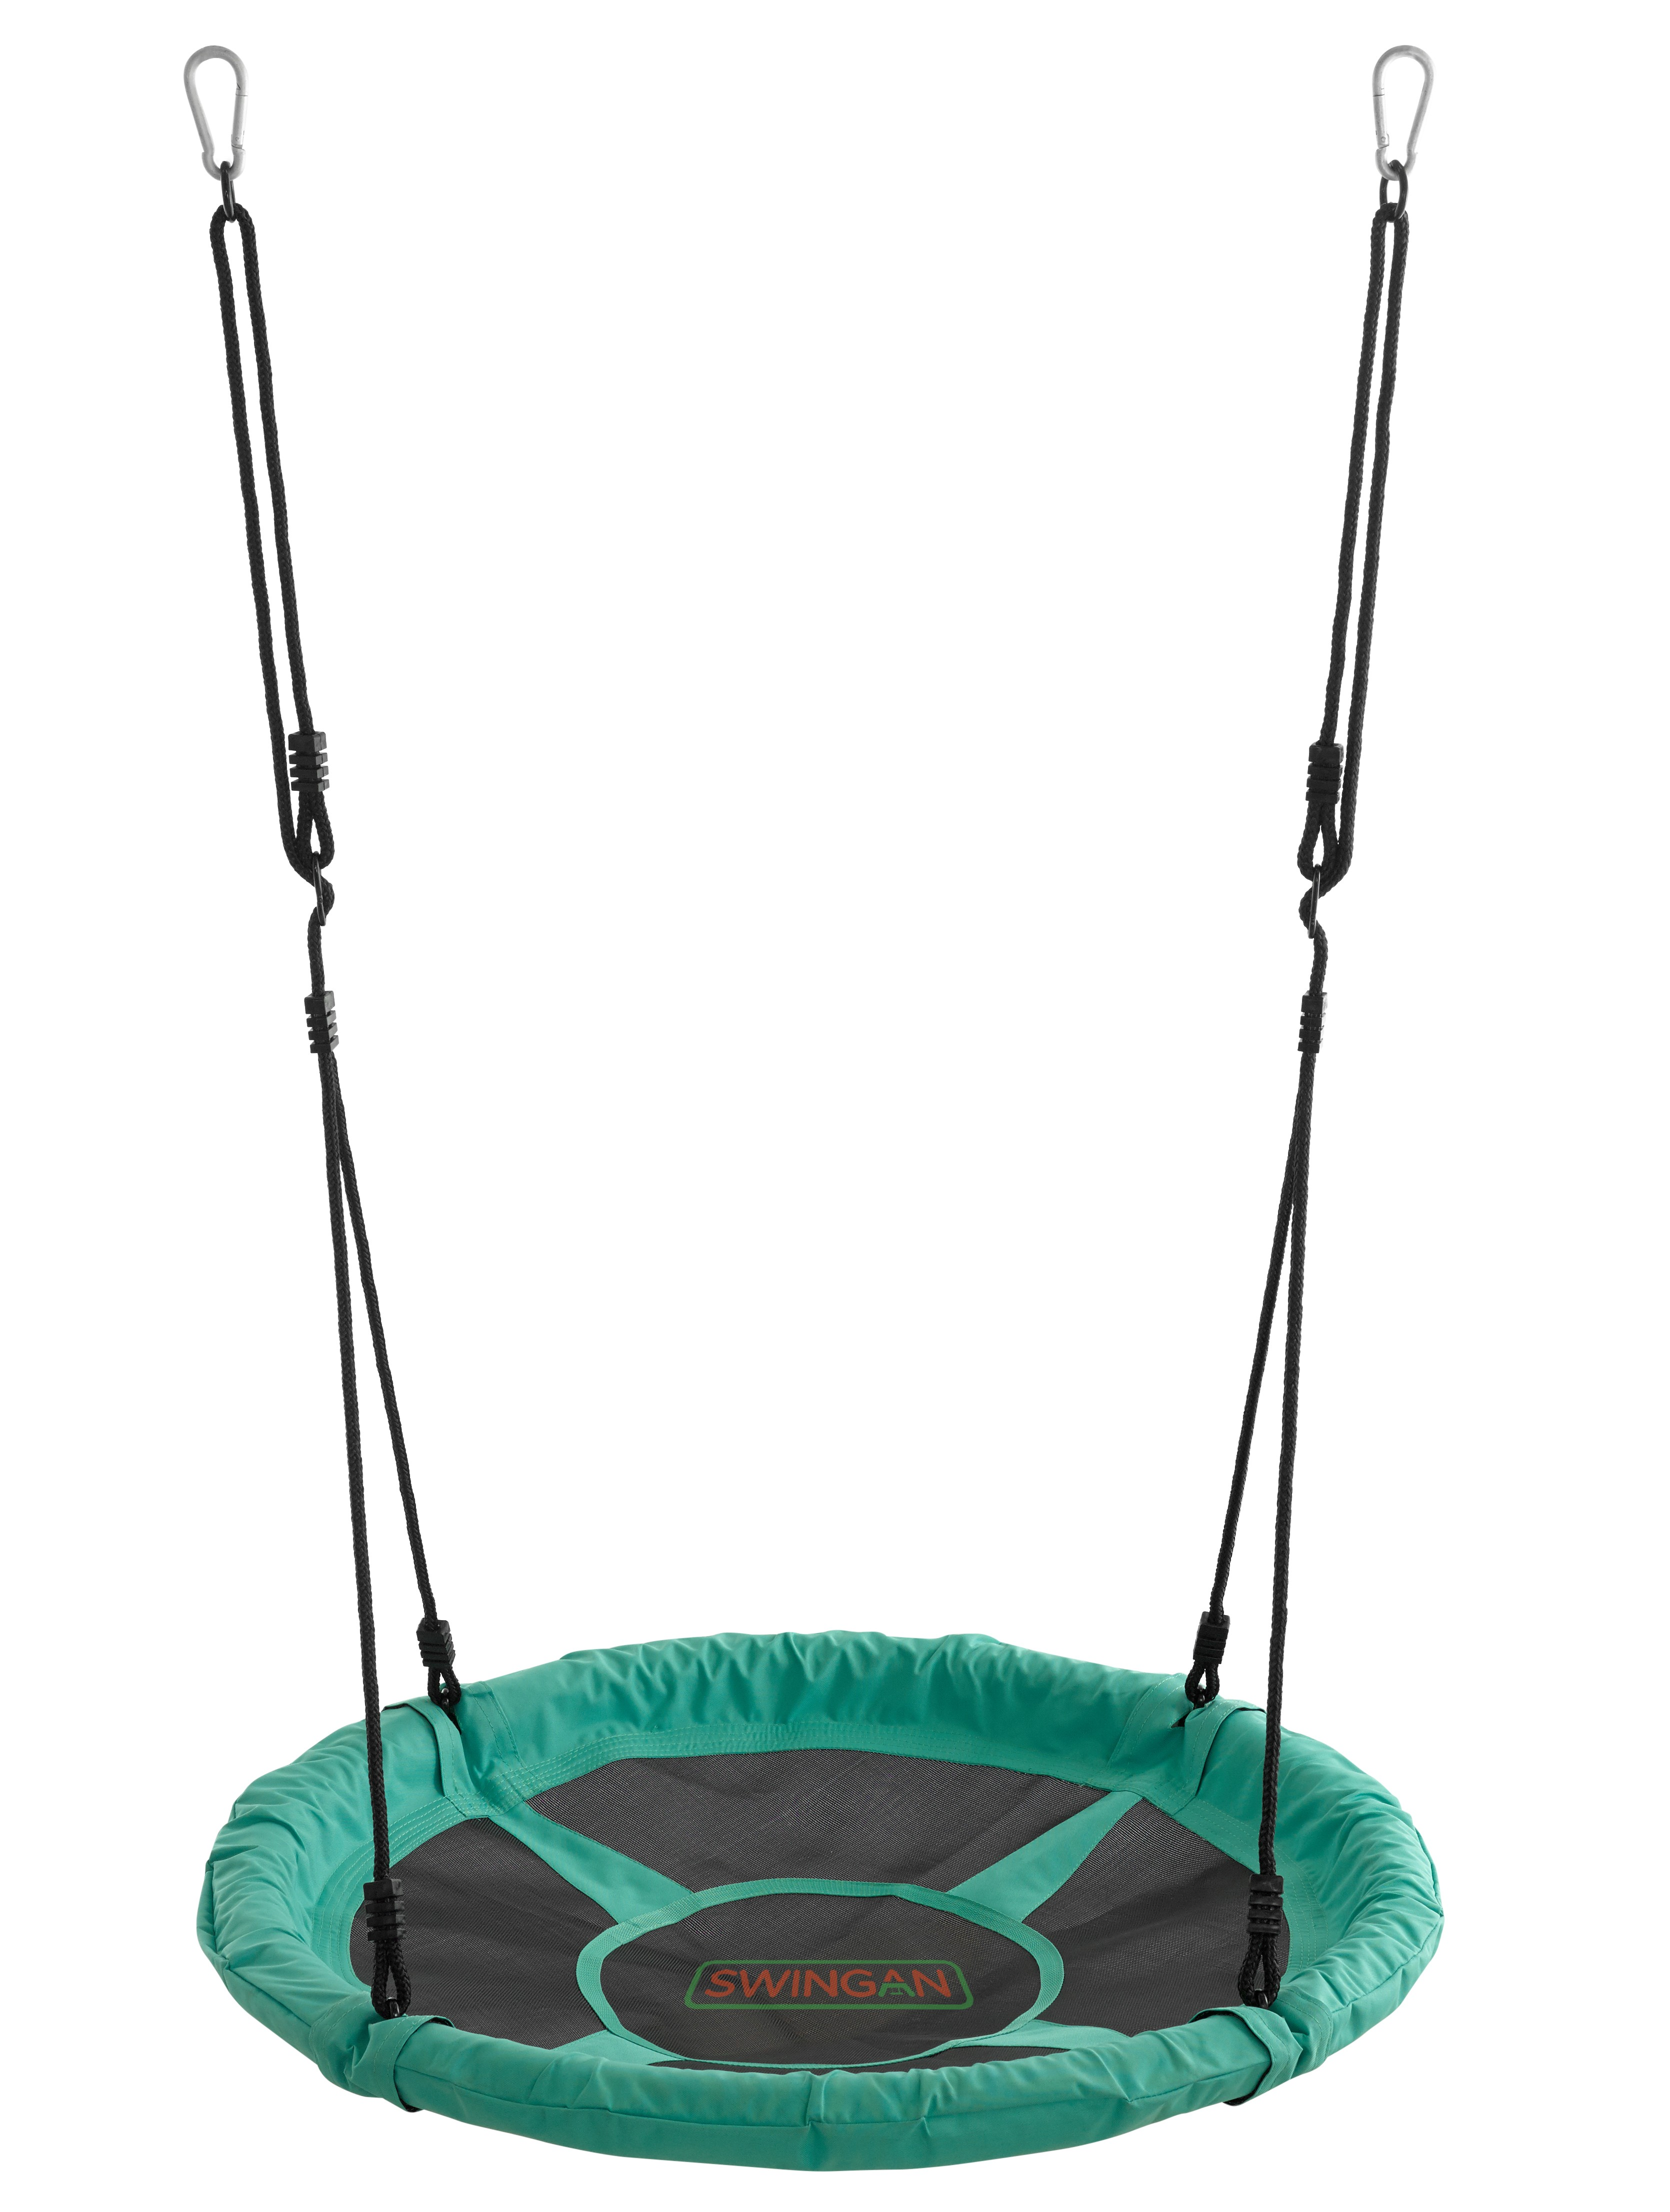 "Swingan - 37.5"" Super Fun Nest Swing with Adjustable Ropes - Green"